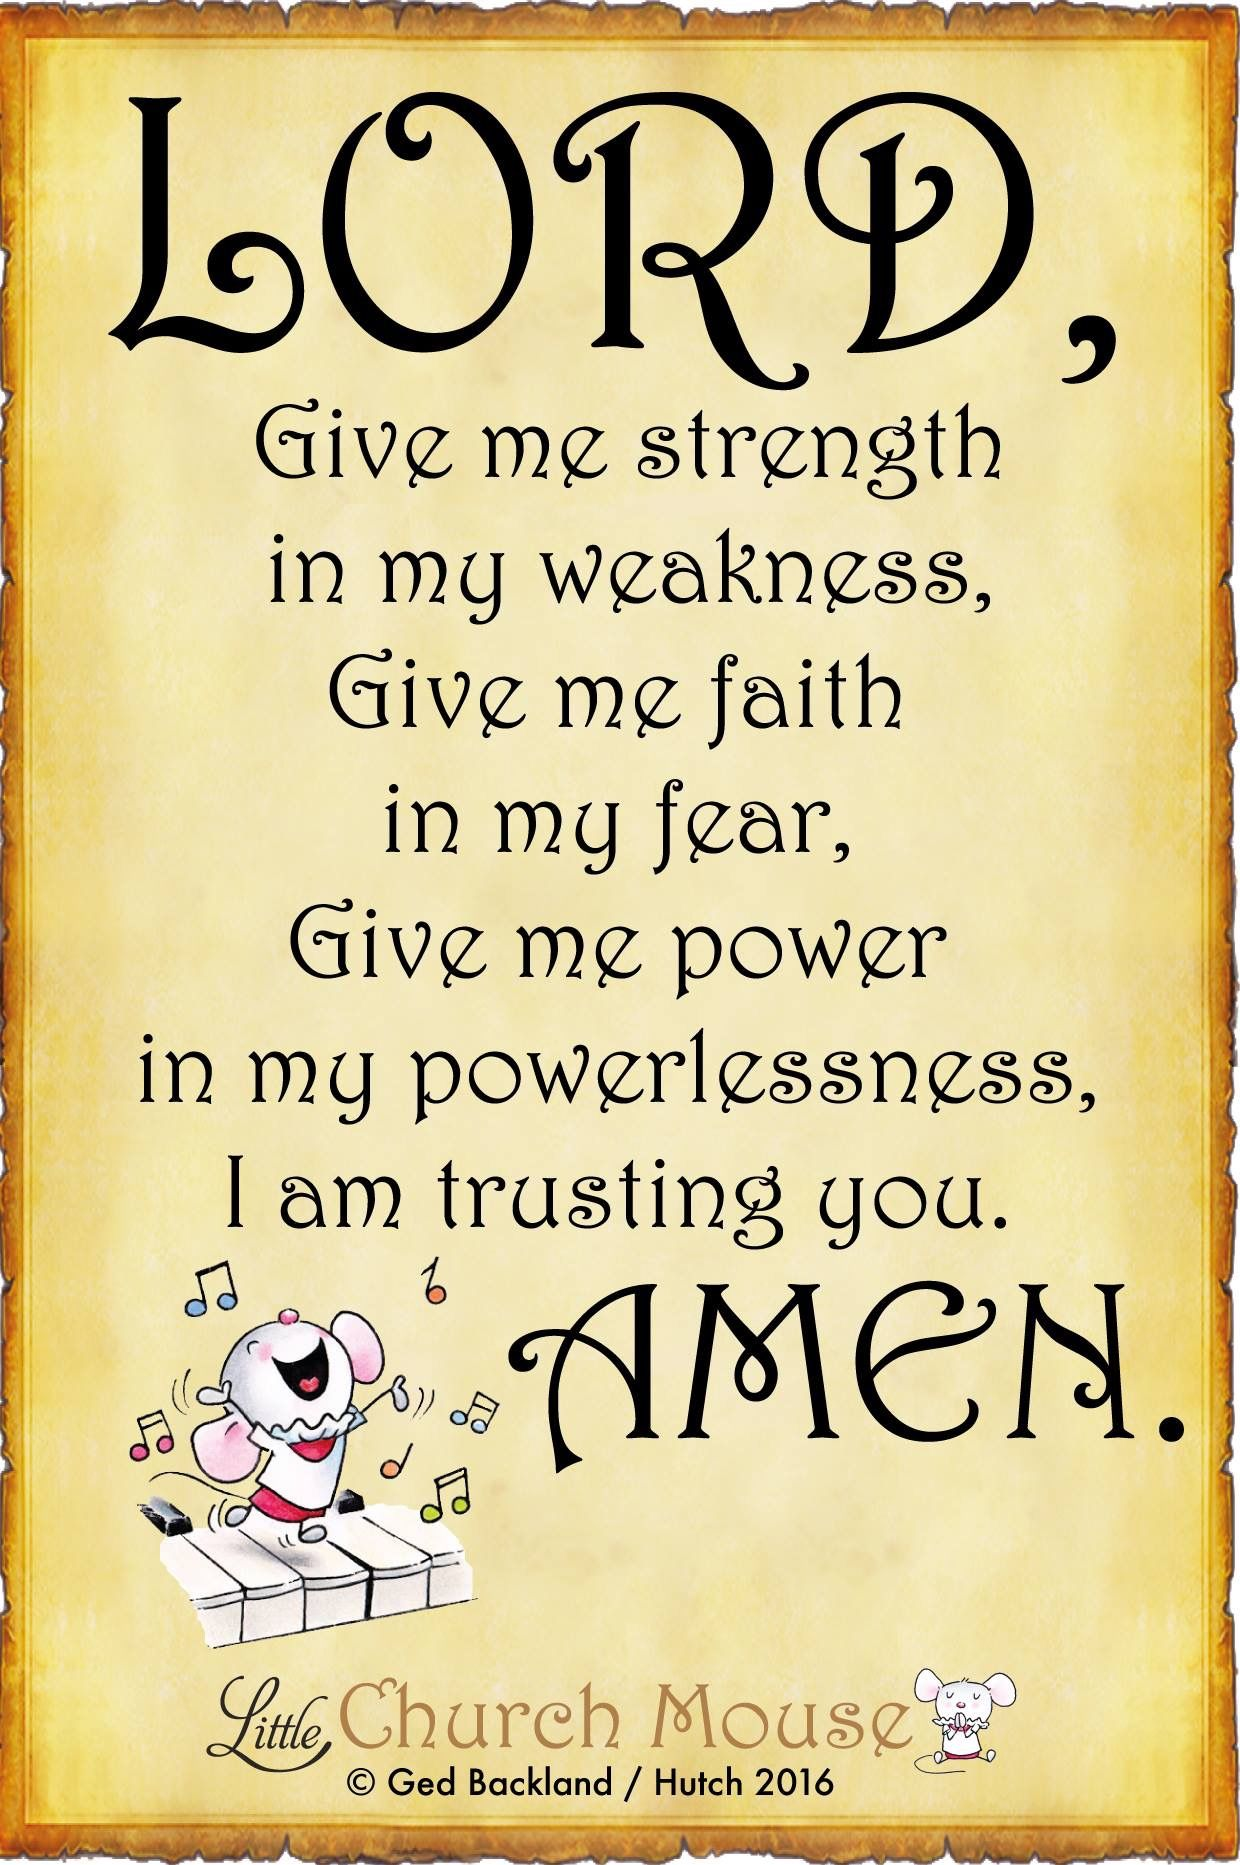 Little Church Mouse Prayer quotes, Faith, Spiritual quotes